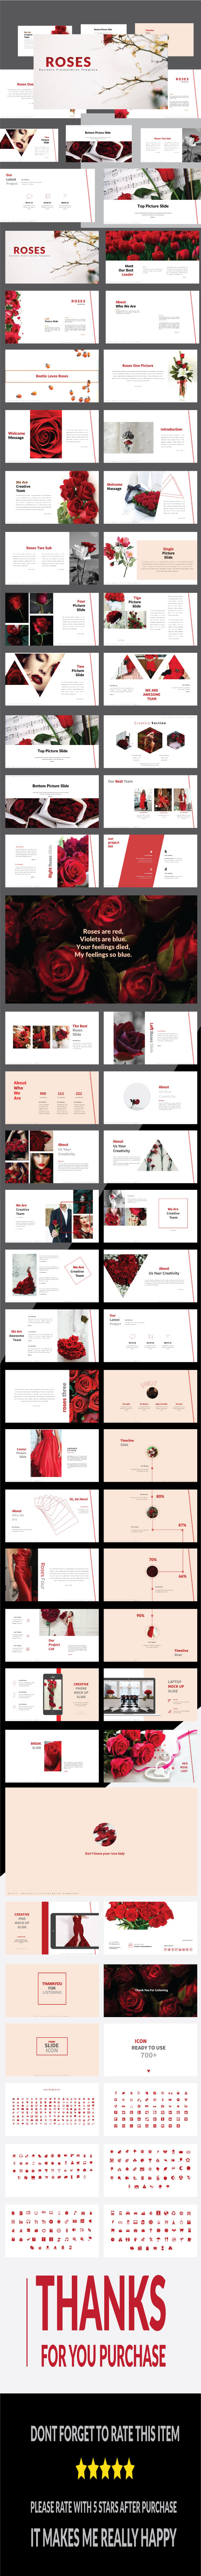 Roses - Multipurpose PowerPoint Template - Business PowerPoint Templates